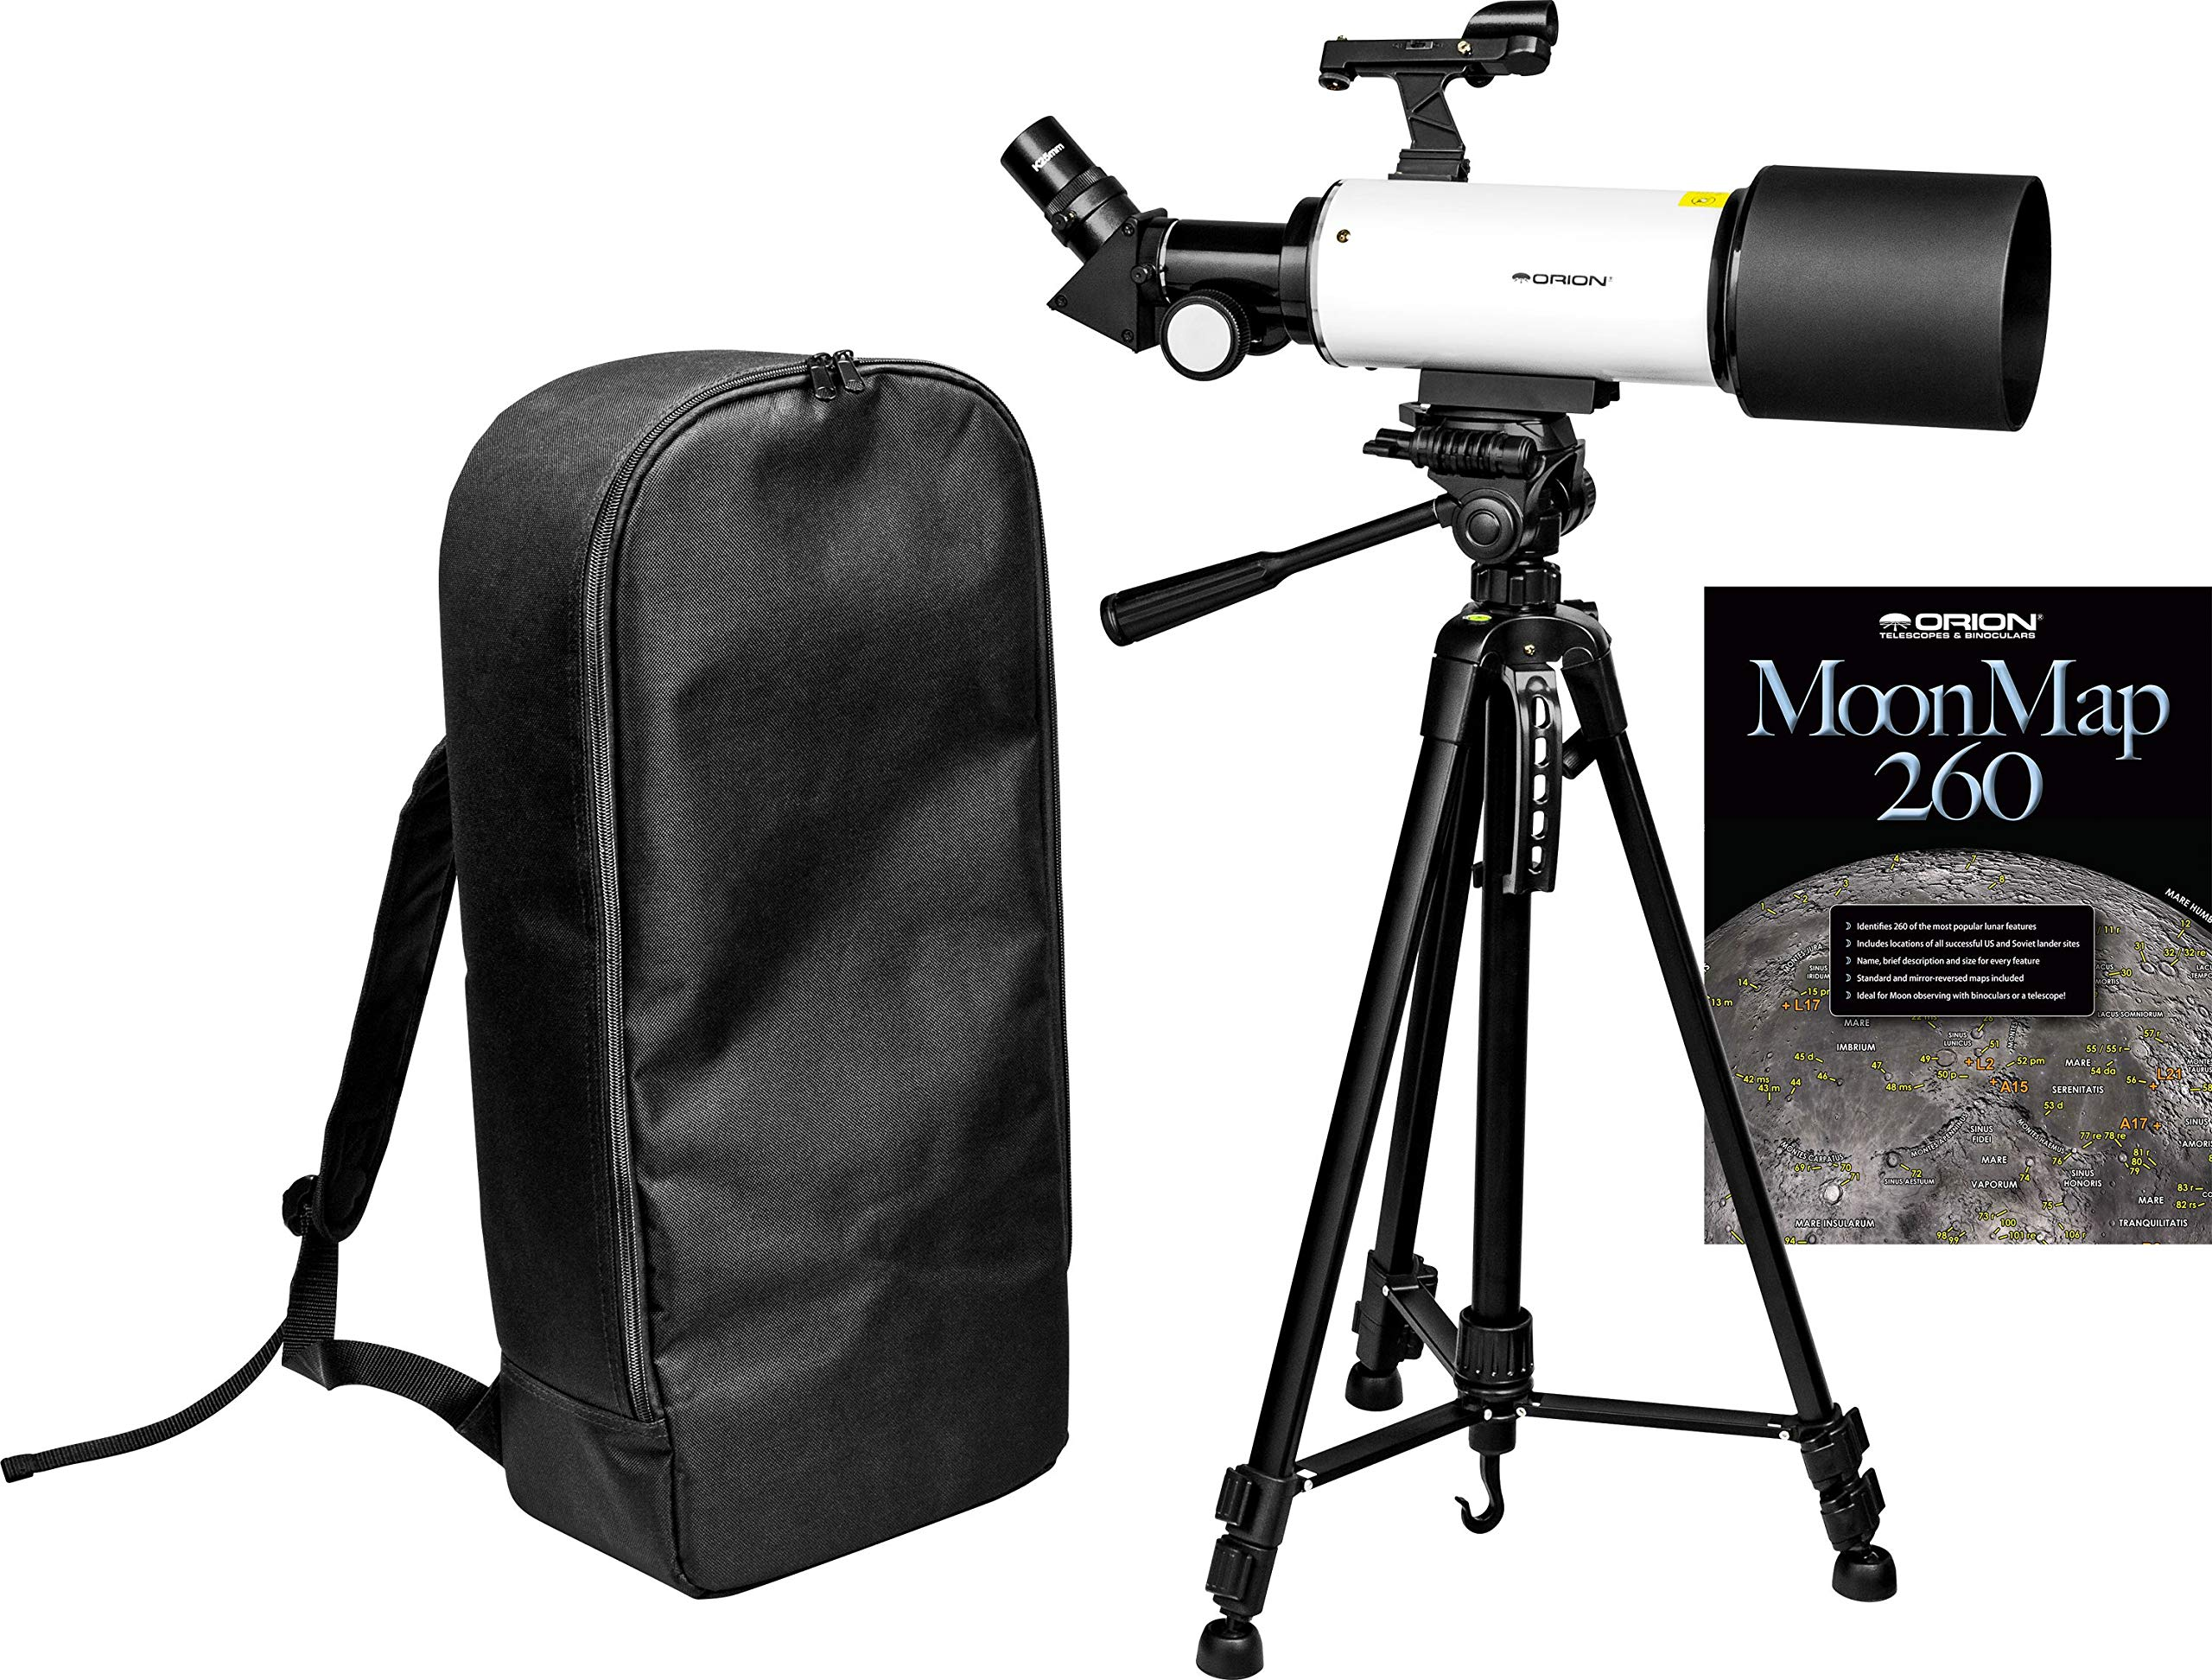 Orion 52596 Goscope 80mm Backpack Refractor Telescope by Orion